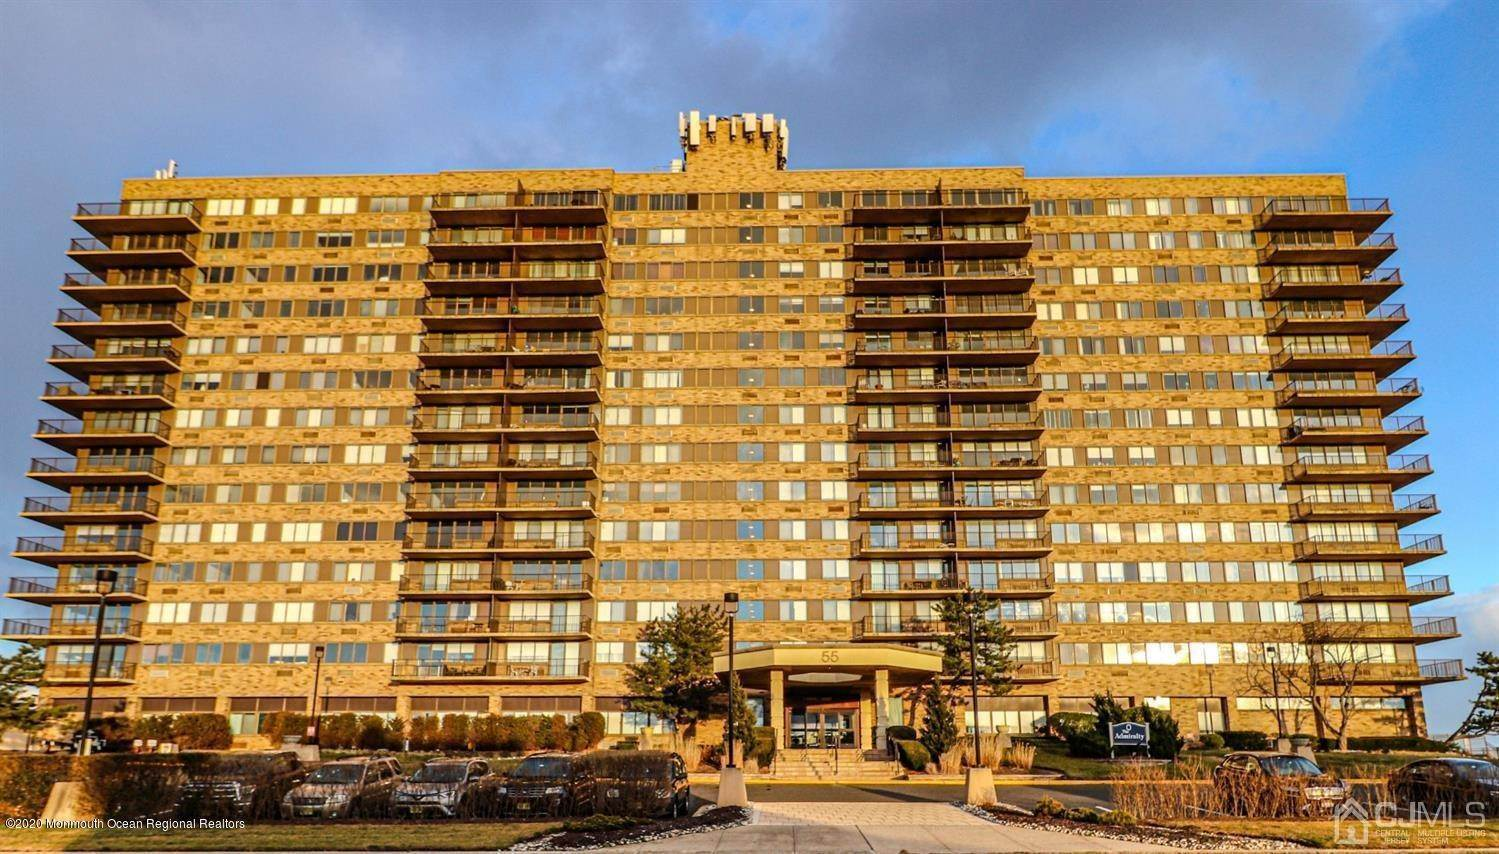 Condominium for Sale at 55 Ocean Avenue Monmouth Beach, New Jersey, 07750 United States